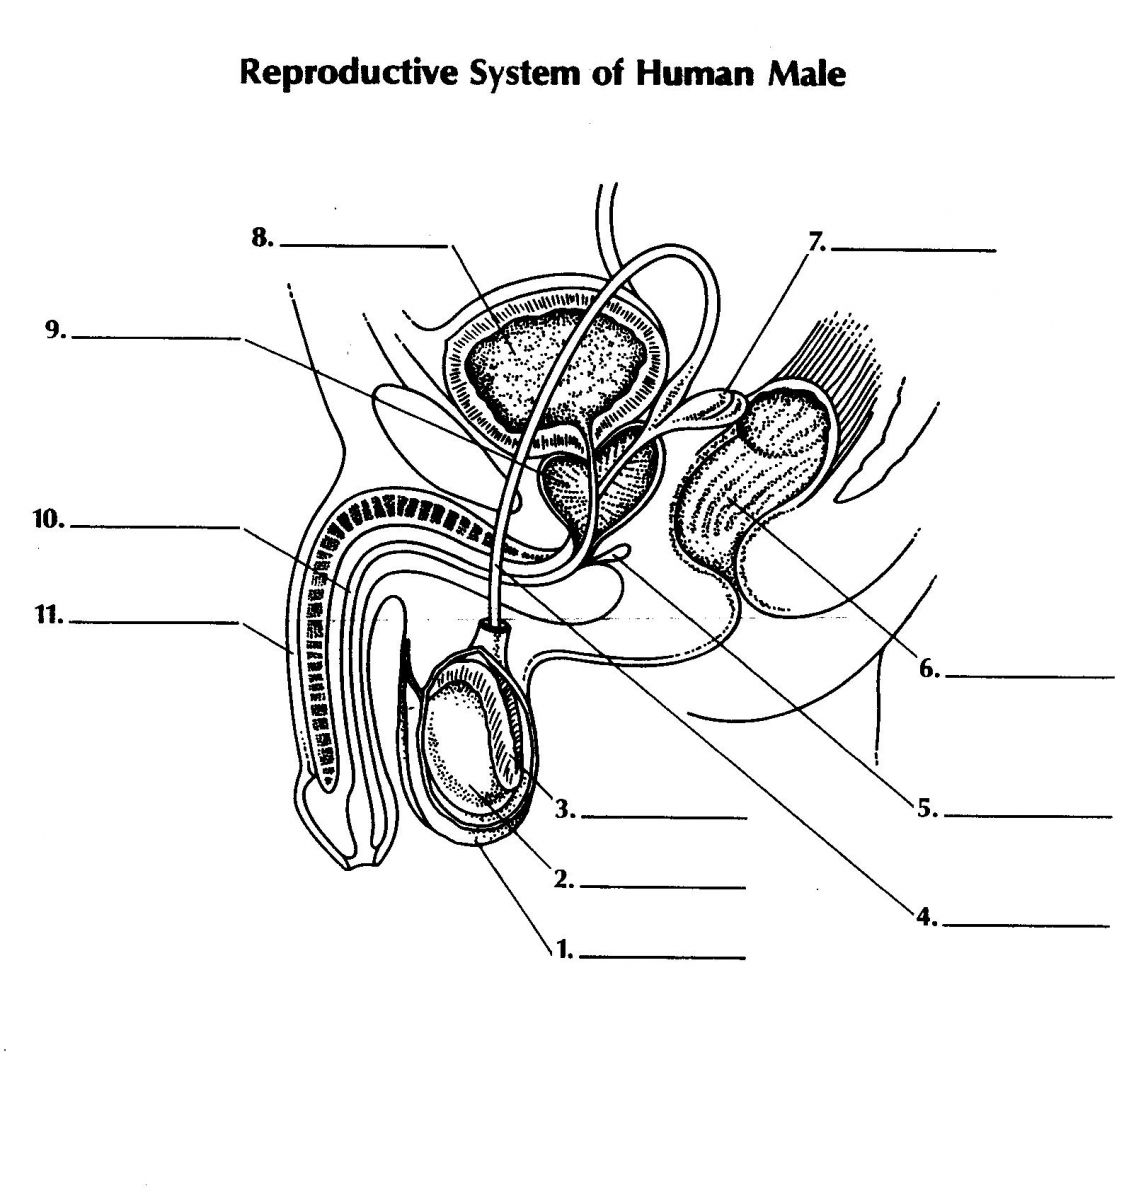 male reproductive system blank diagram and answers